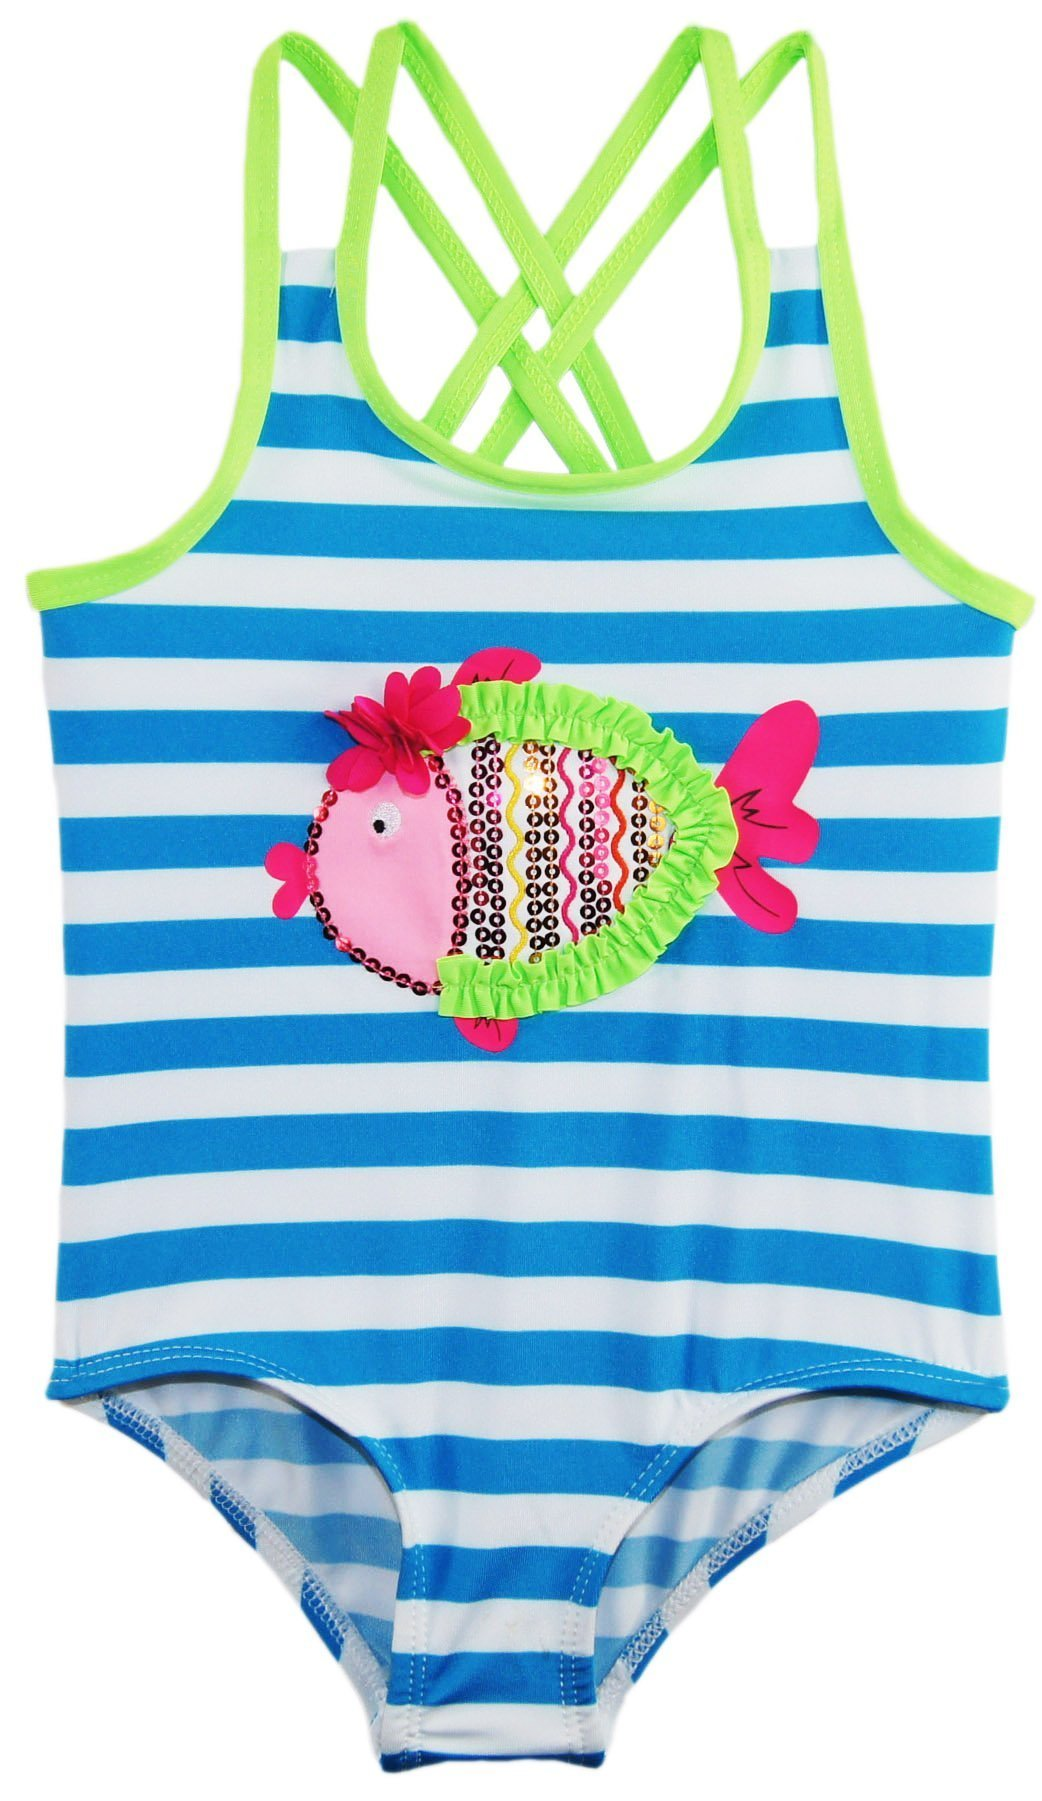 Wippette Baby Stripes with Fish Applique Swimsuit, Atomic Blue, 24 Months